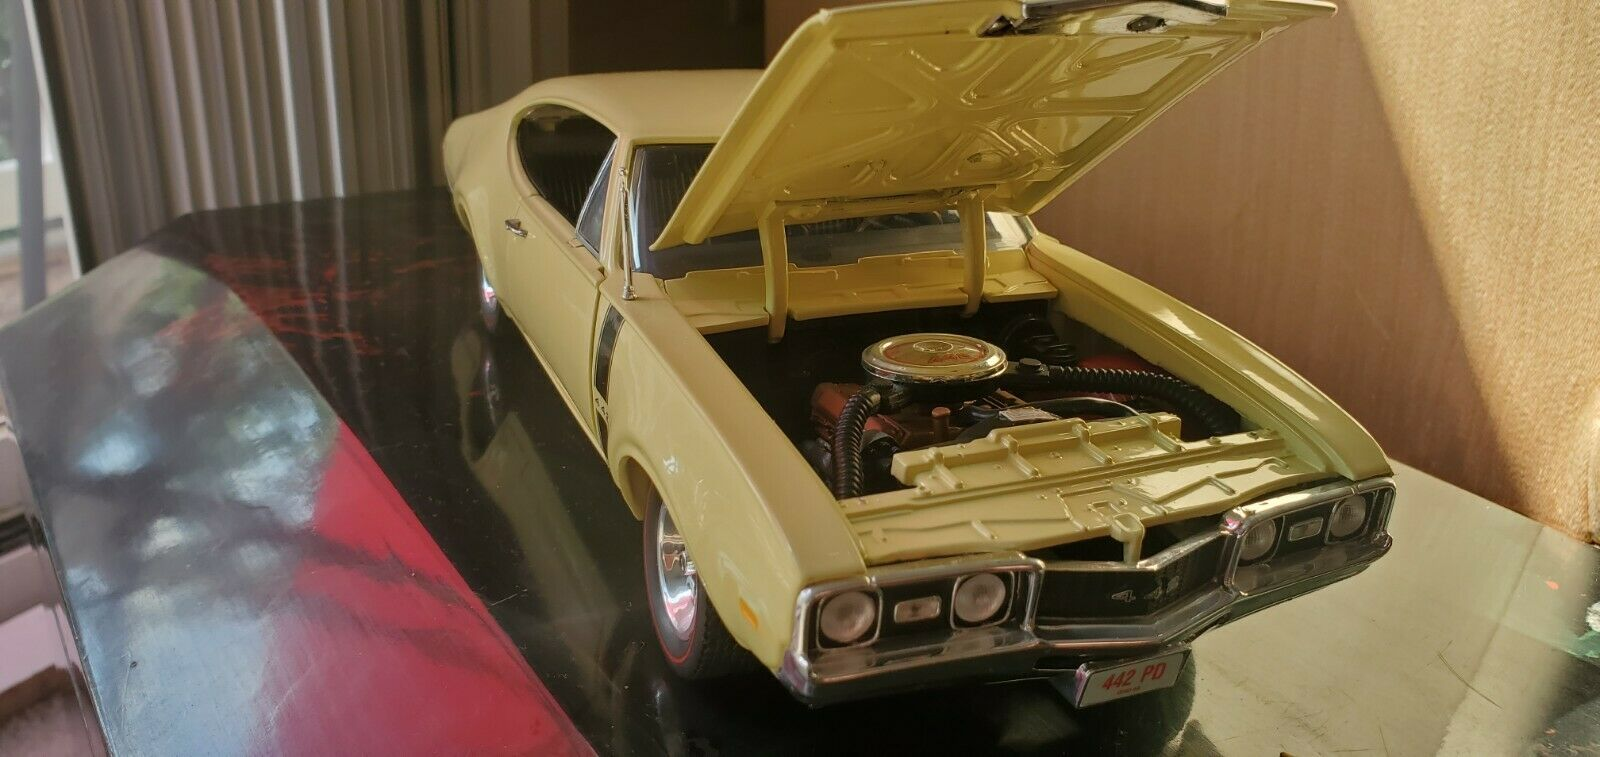 Ertl American Muscle 1968 Olds 4 4 2 Yellow 1 18 Die Cast Limited